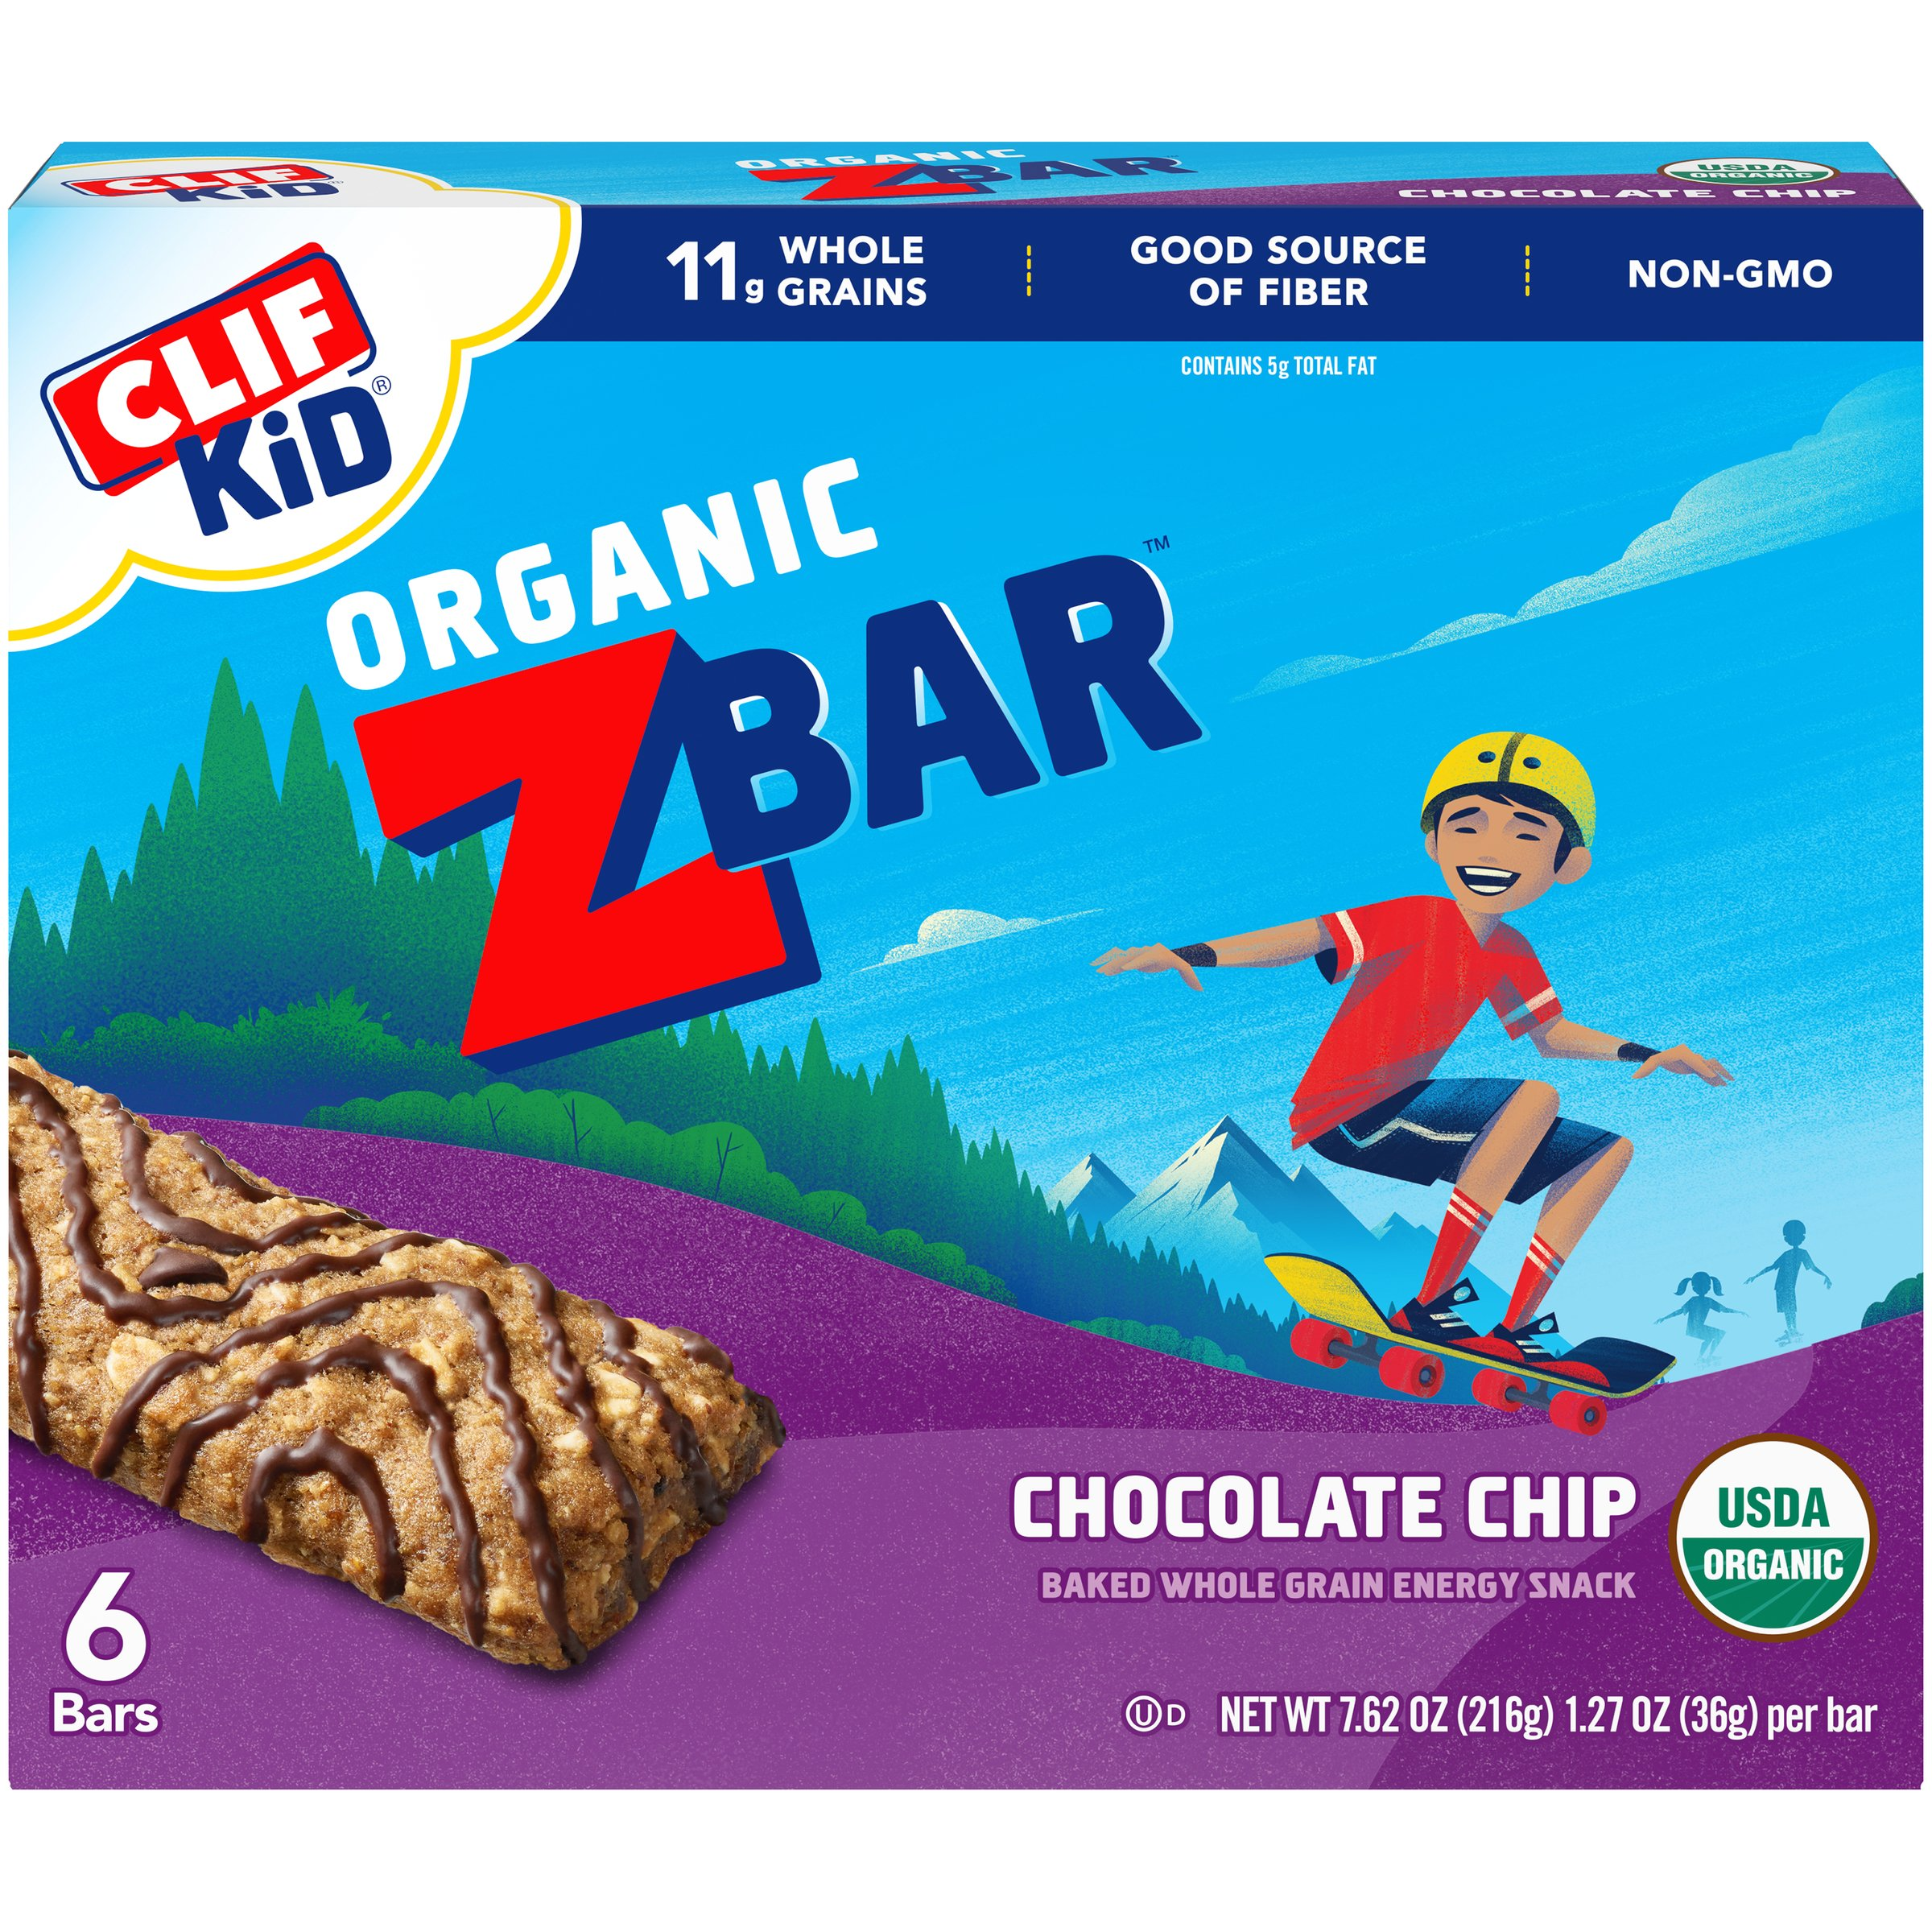 CLIF Kid® Organic ZBar™ Chocolate Chip Baked Whole Grain Energy Snack 6-1.27 oz. Bars